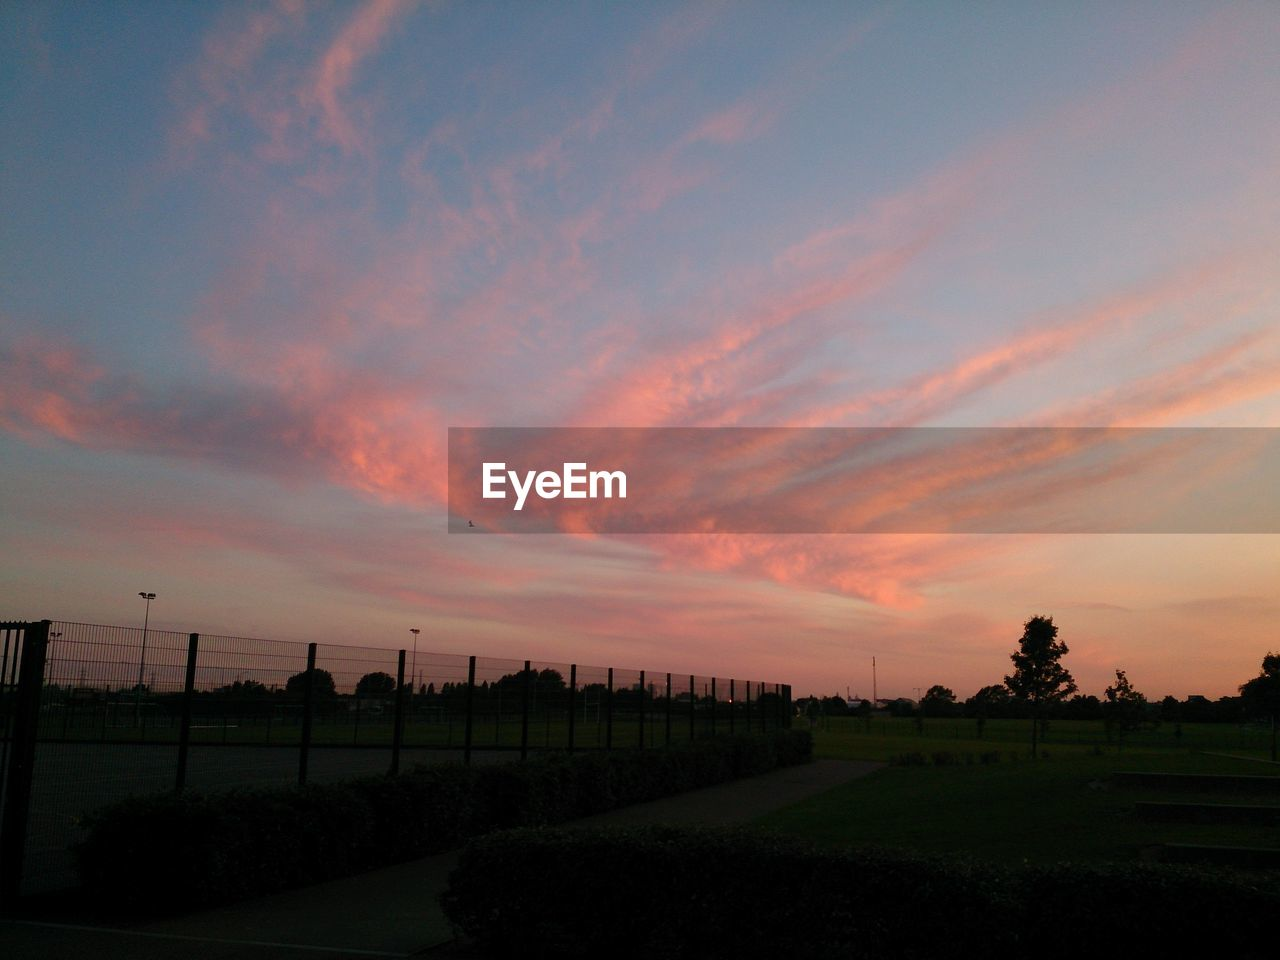 sunset, tranquility, tranquil scene, beauty in nature, agriculture, landscape, scenics, field, nature, rural scene, sky, tree, outdoors, no people, cloud - sky, growth, day